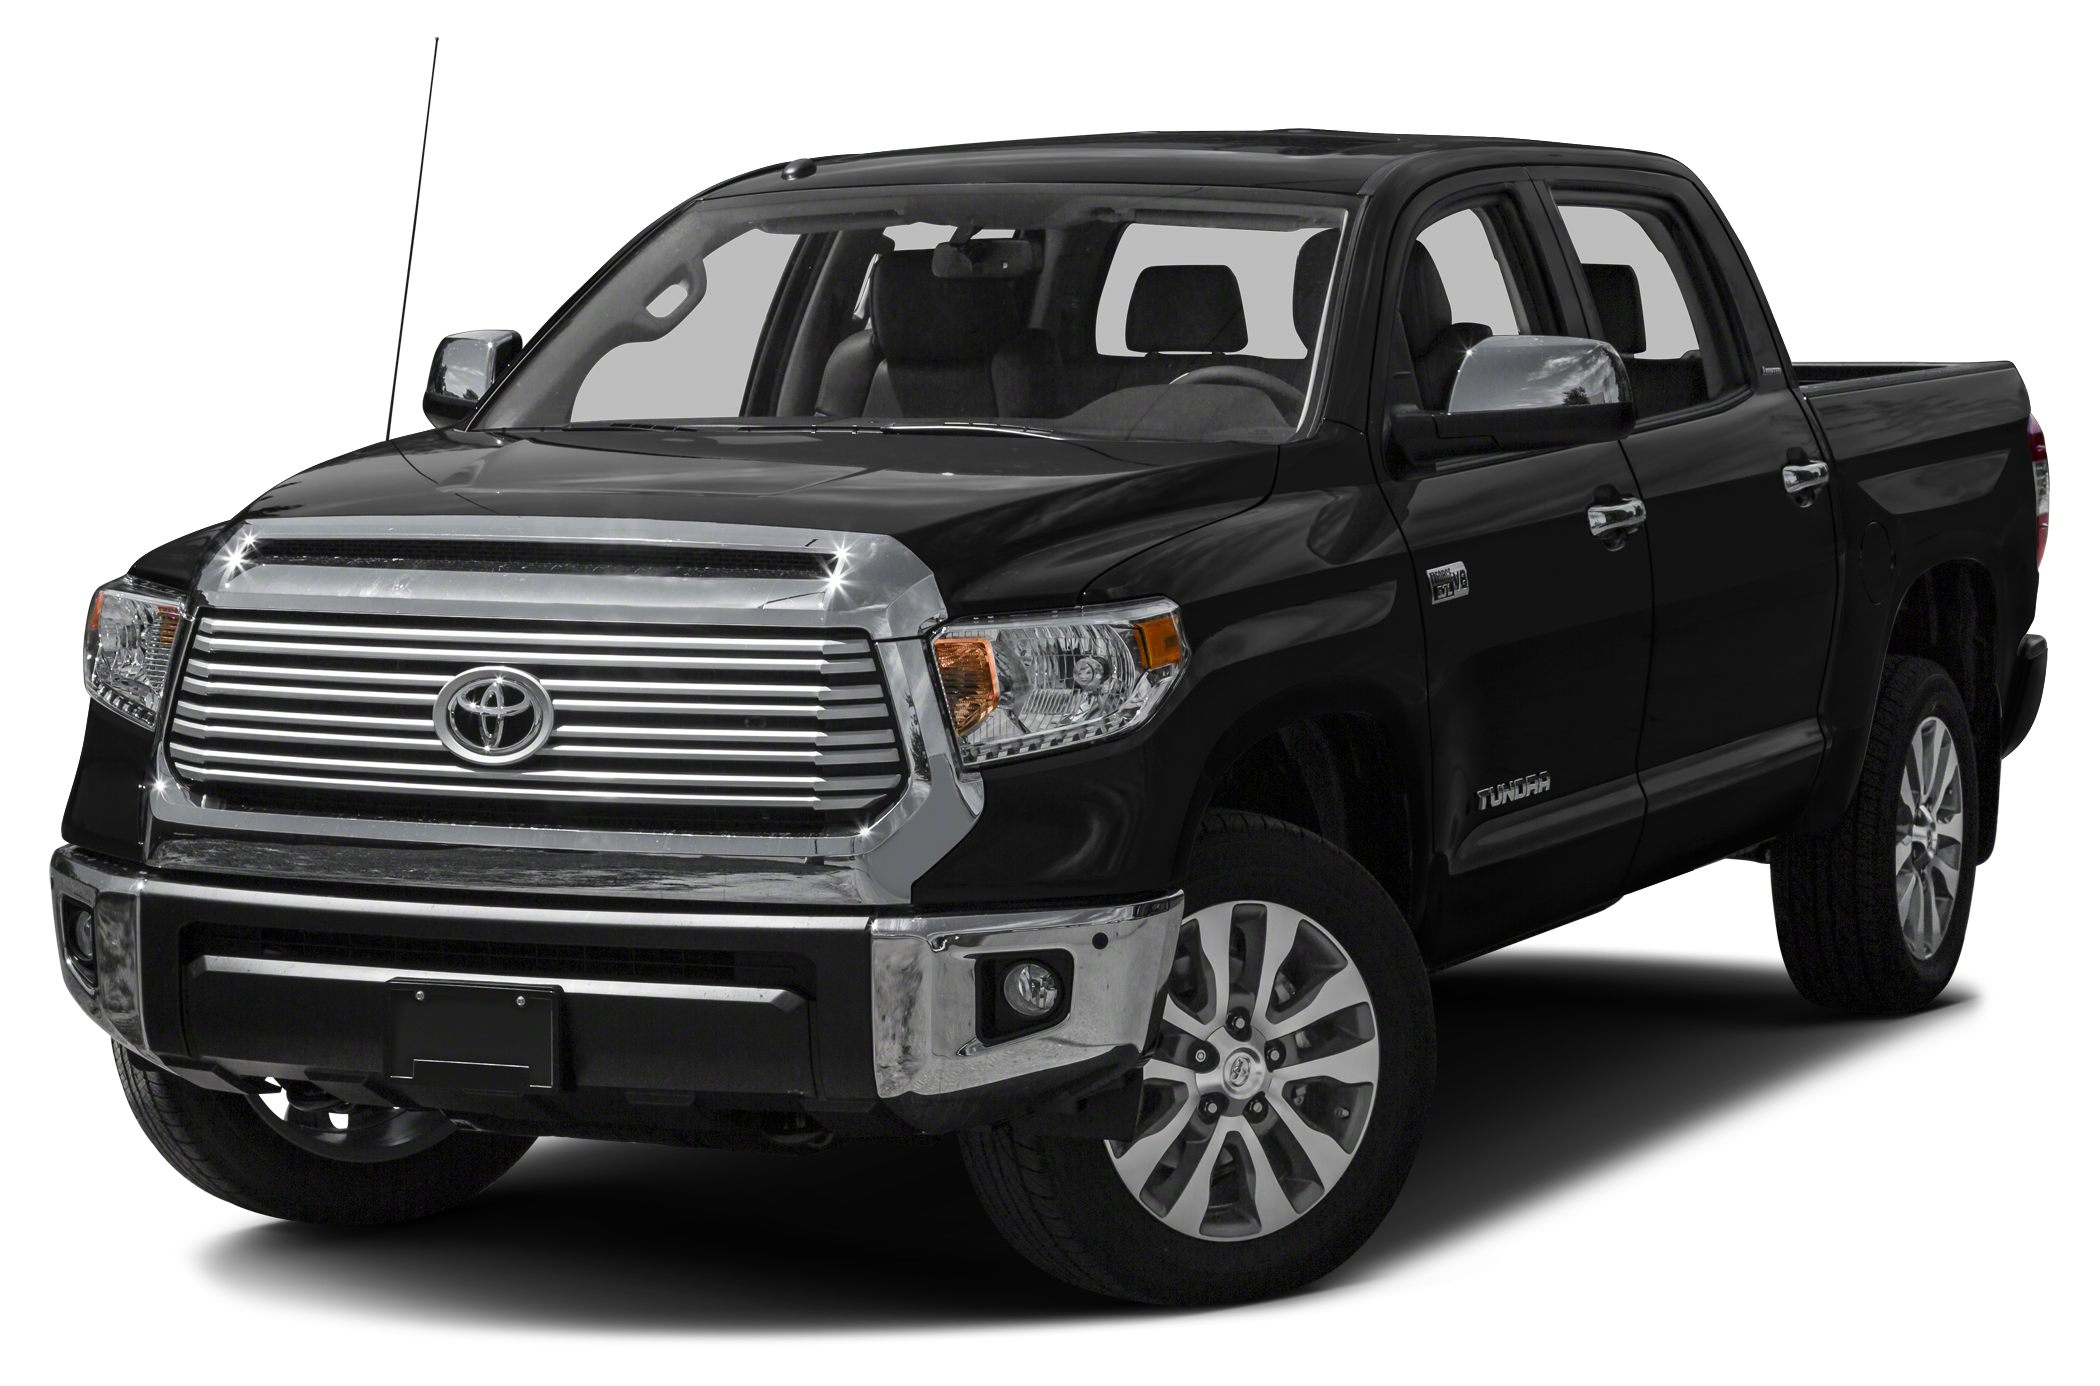 2017 Toyota Tundra Limited Westboro Toyota is proud to present HASSLE FREE BUYING EXPERIENCE with